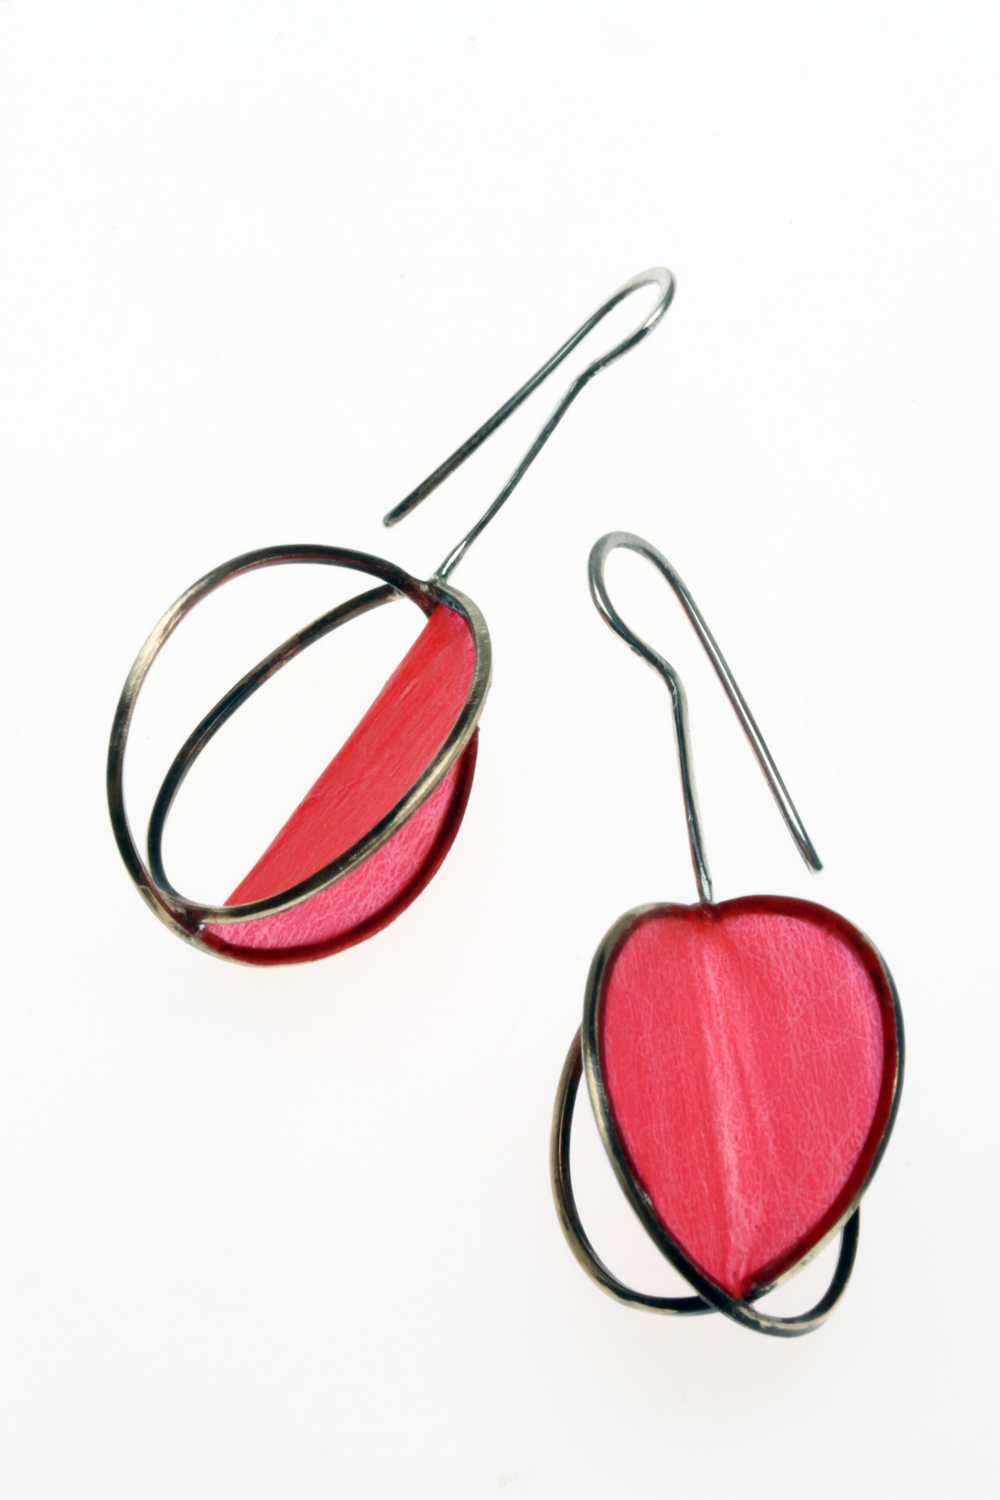 CROSSED COIL MATRIX EARRINGS, with one panel of Coverlite covering, are 5.4 cm high, 2015. The Coverlite conforms to the planes of the panel and is a matte finish. The brass wire was annealed, then wound on a wood dowel, much like one would make large jump rings. Nipped apart, ends filed square and soldered to form two crisscrossed rings. These are photographed with both reflective and transiluminated light. My bamboo and matrix jewelry is carried by Freehand Gallery, in Los Angeles.